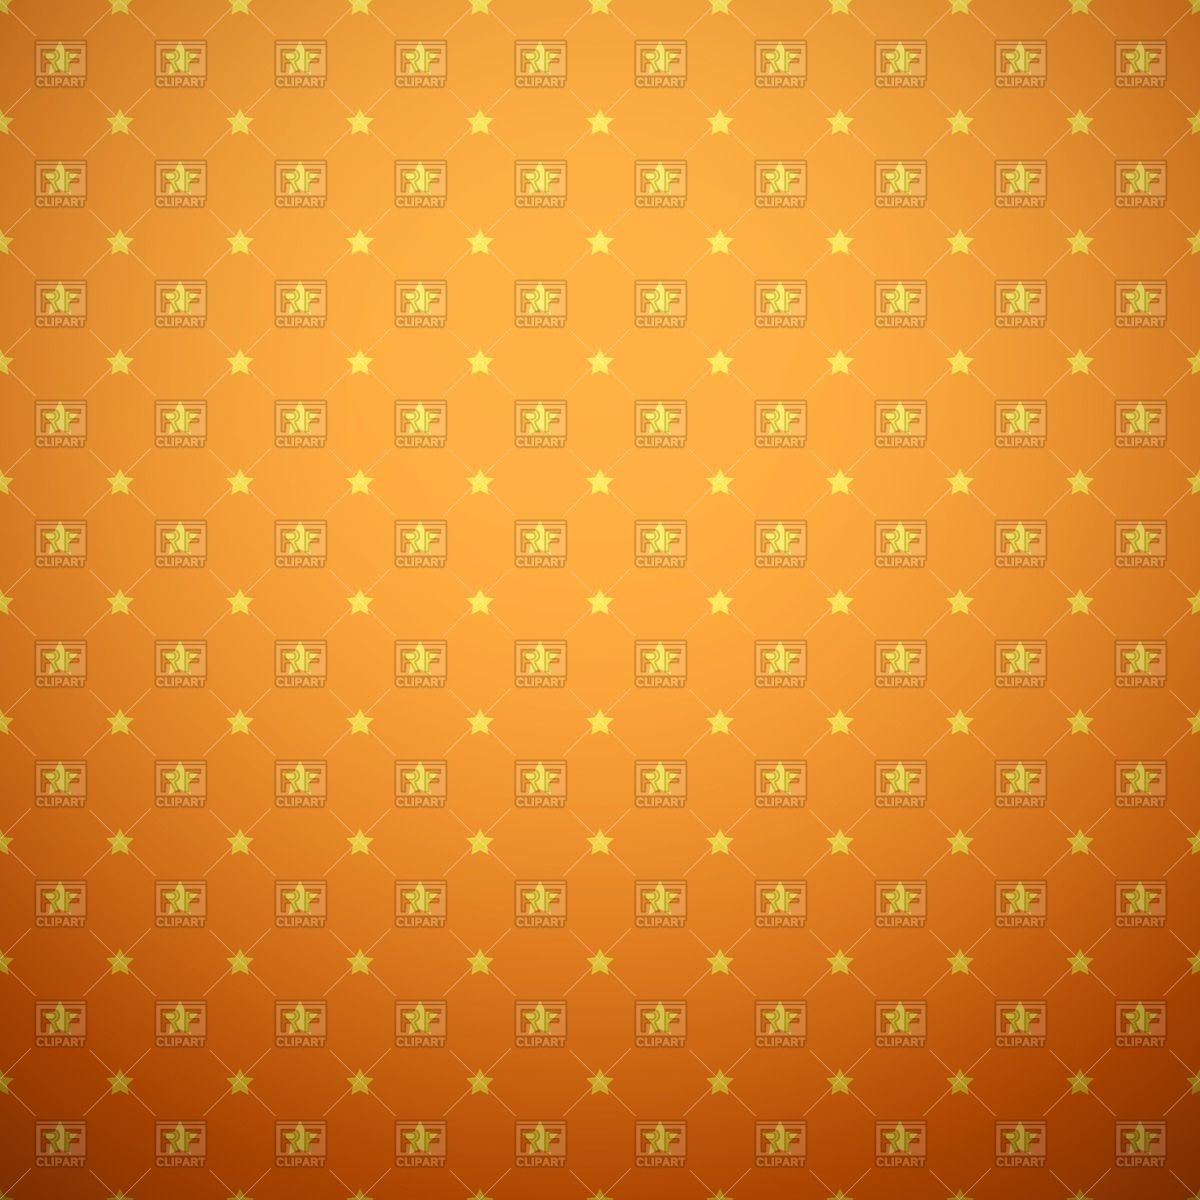 Stellar orange wallpaper Vector Image #40197.